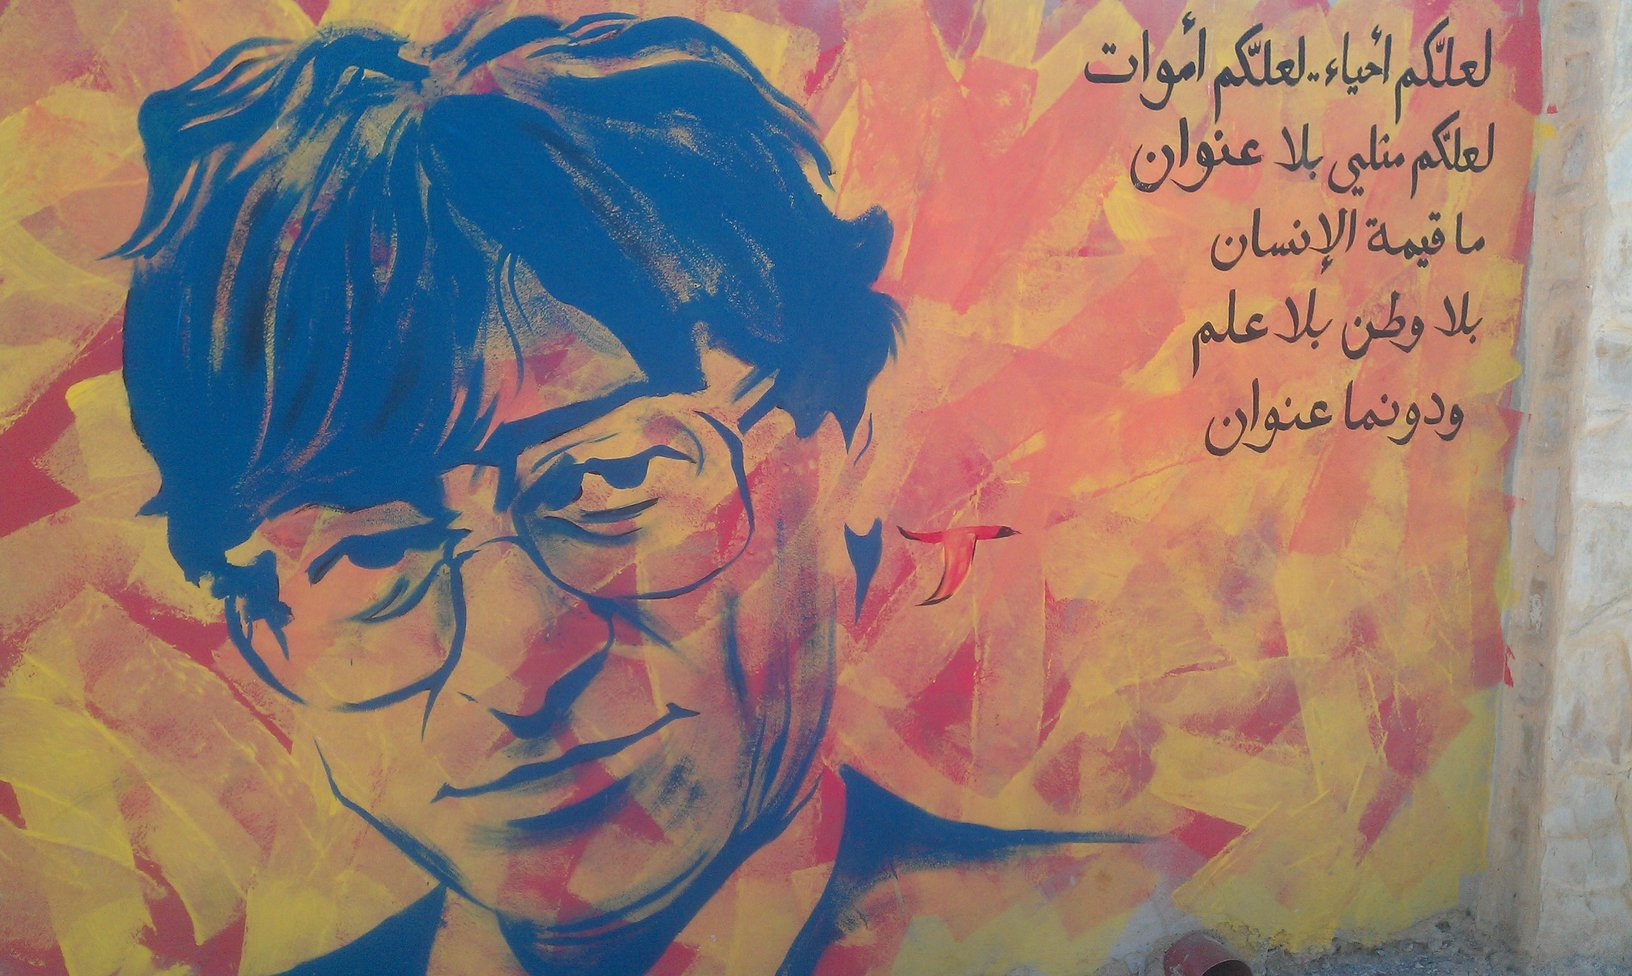 Mahmoud Darwish painting